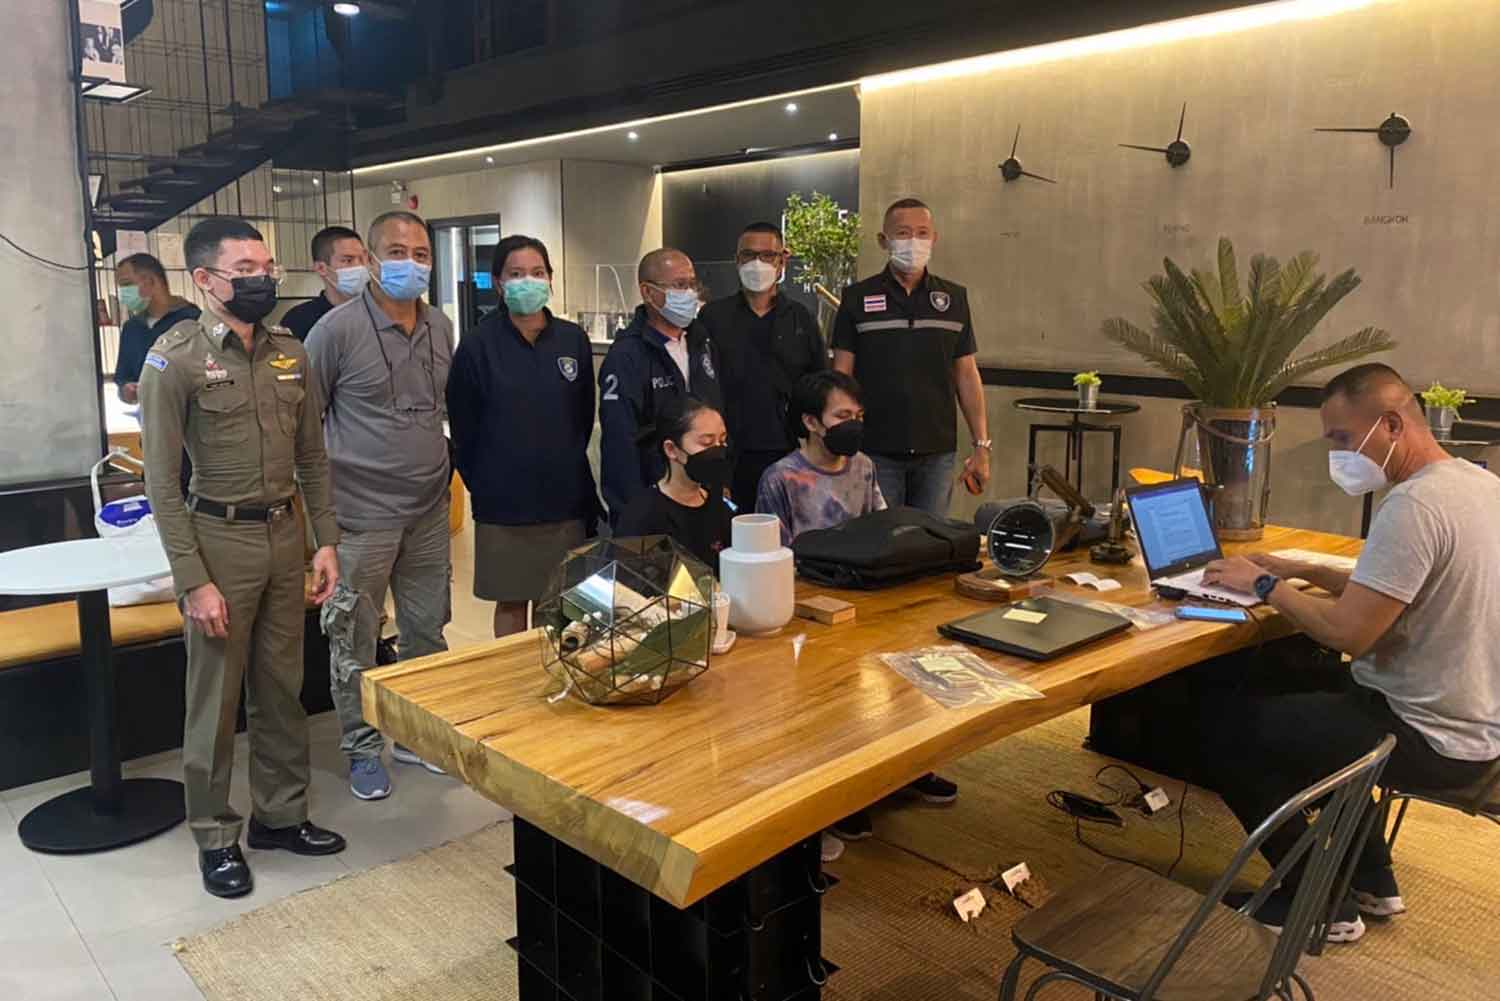 The couple arrested for streaming their sexual activities online, seated, in police custody after being arrested at a hotel in Samut Prakan province on Sept 20. (Photo: Cyber Crime Investigation Bureau)